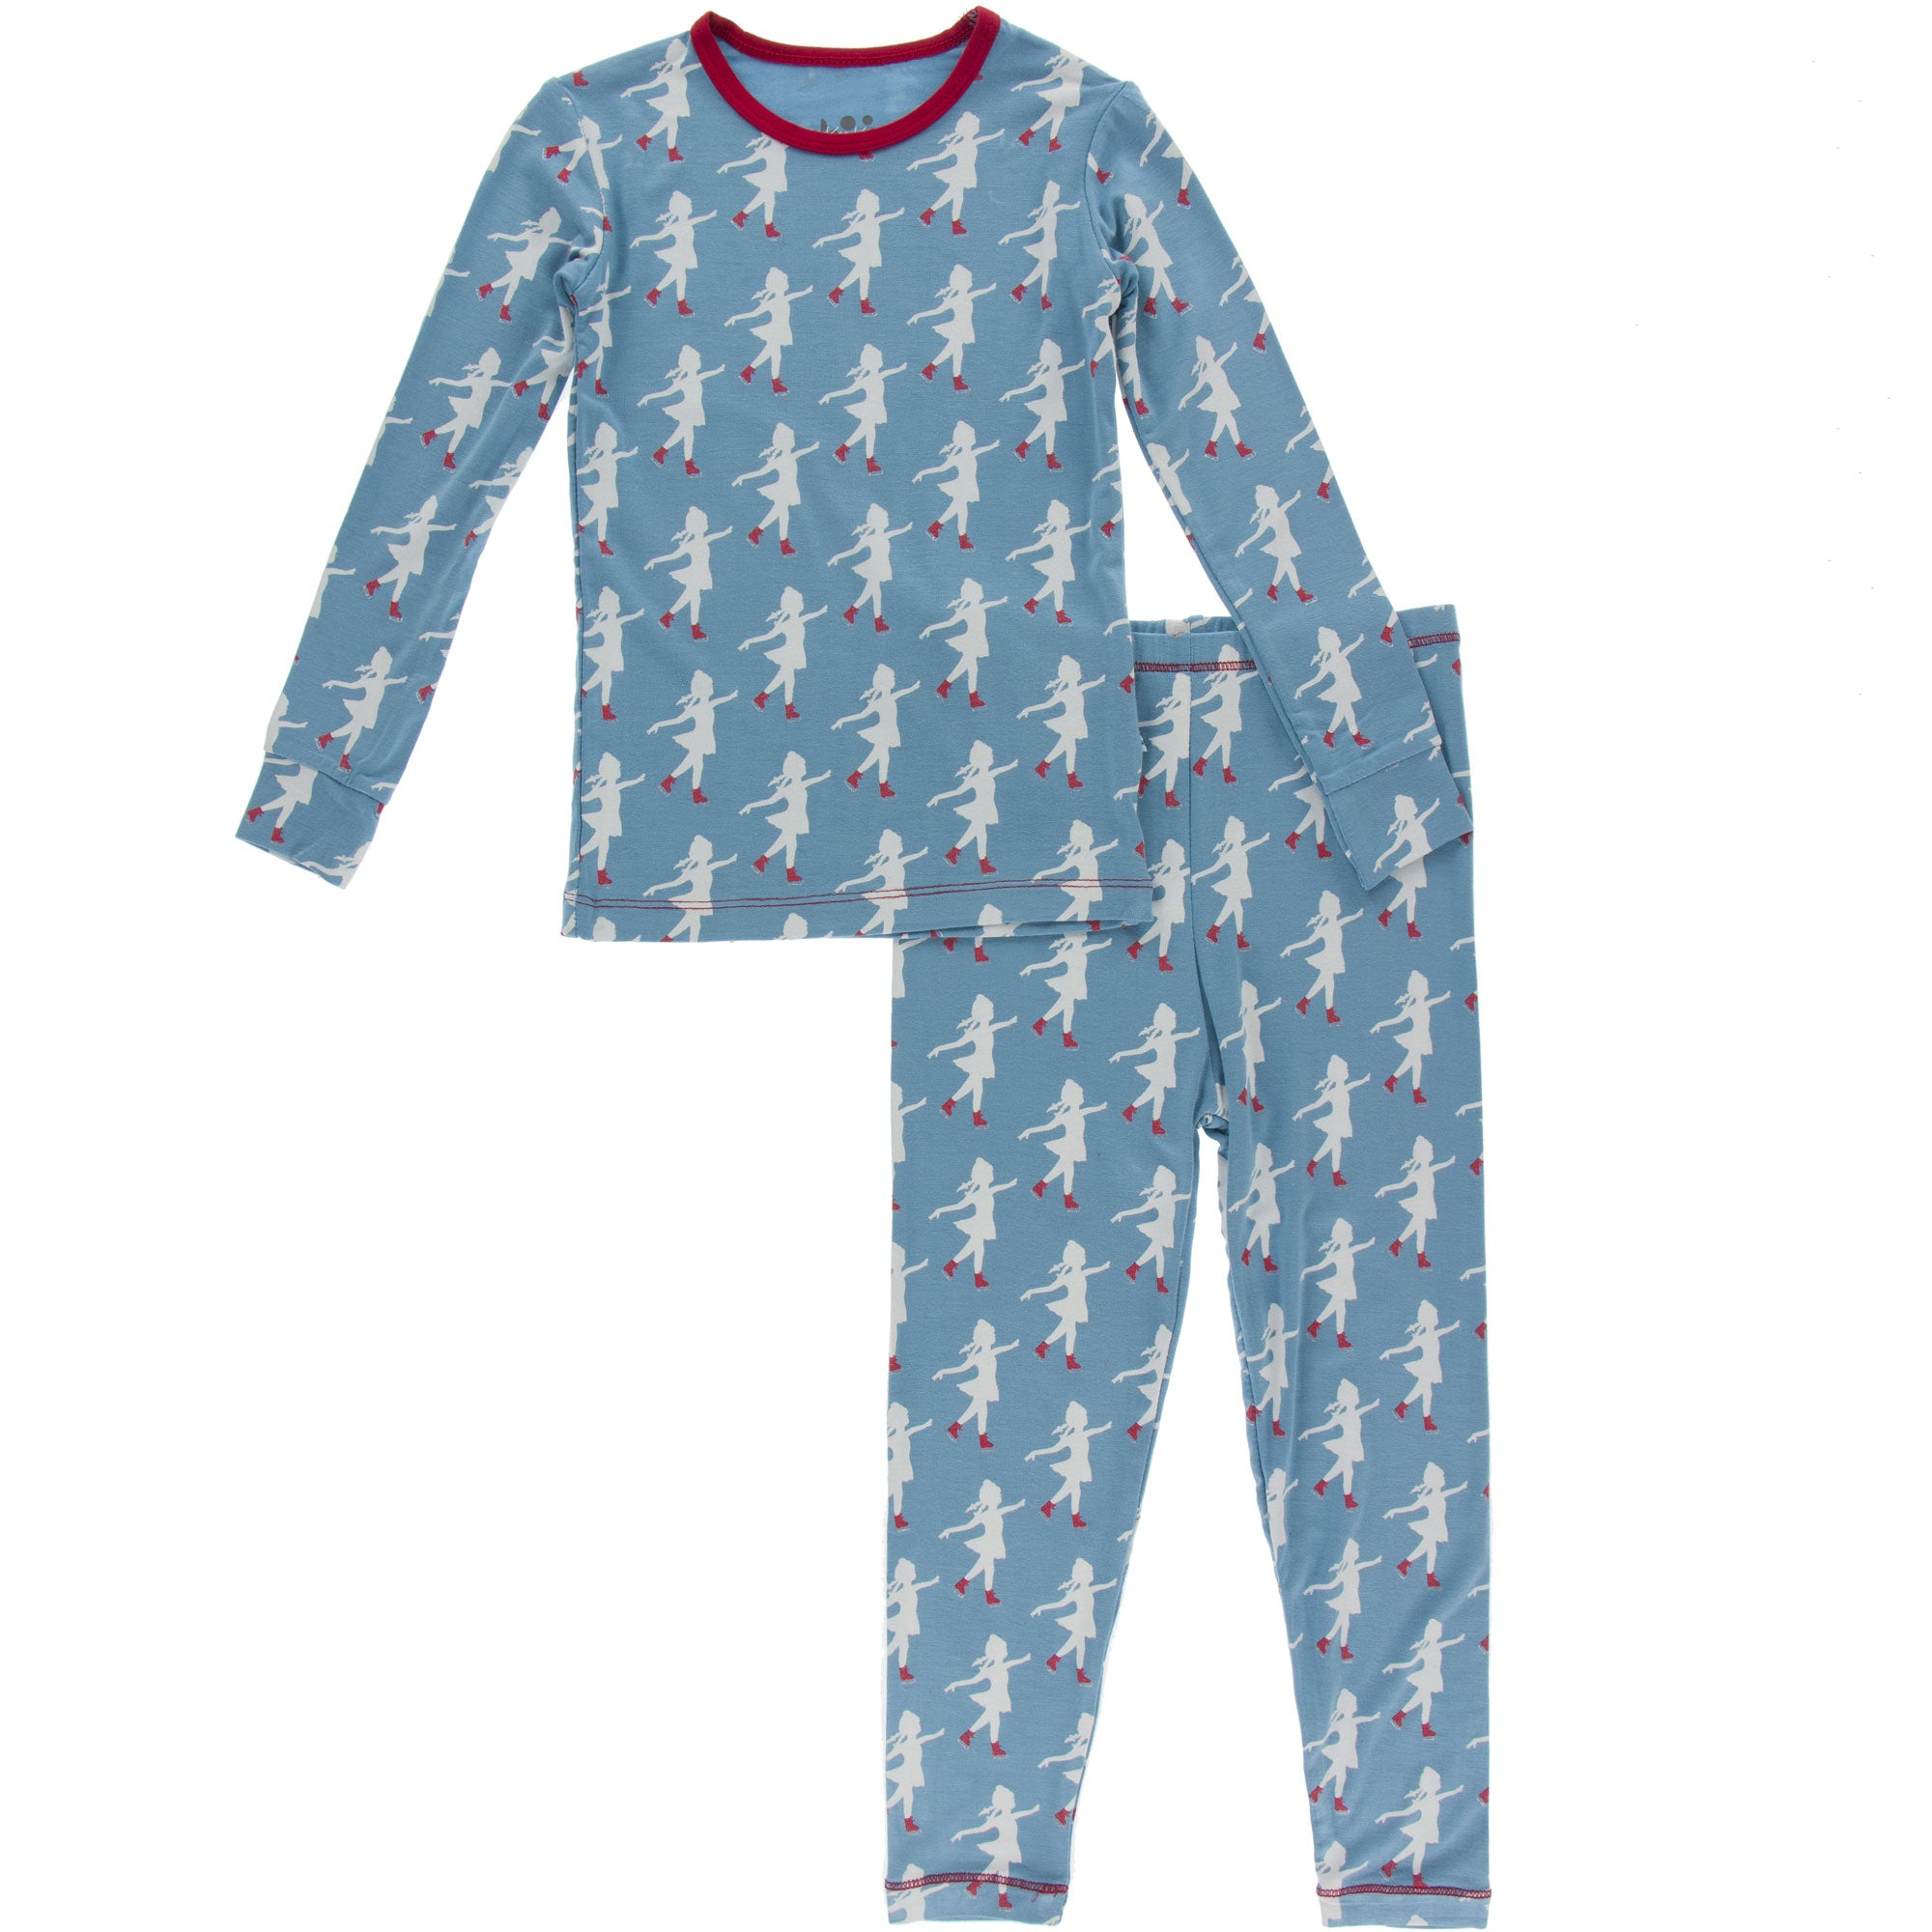 KicKee Pants Pajama Set - Blue Moon Ice Skater